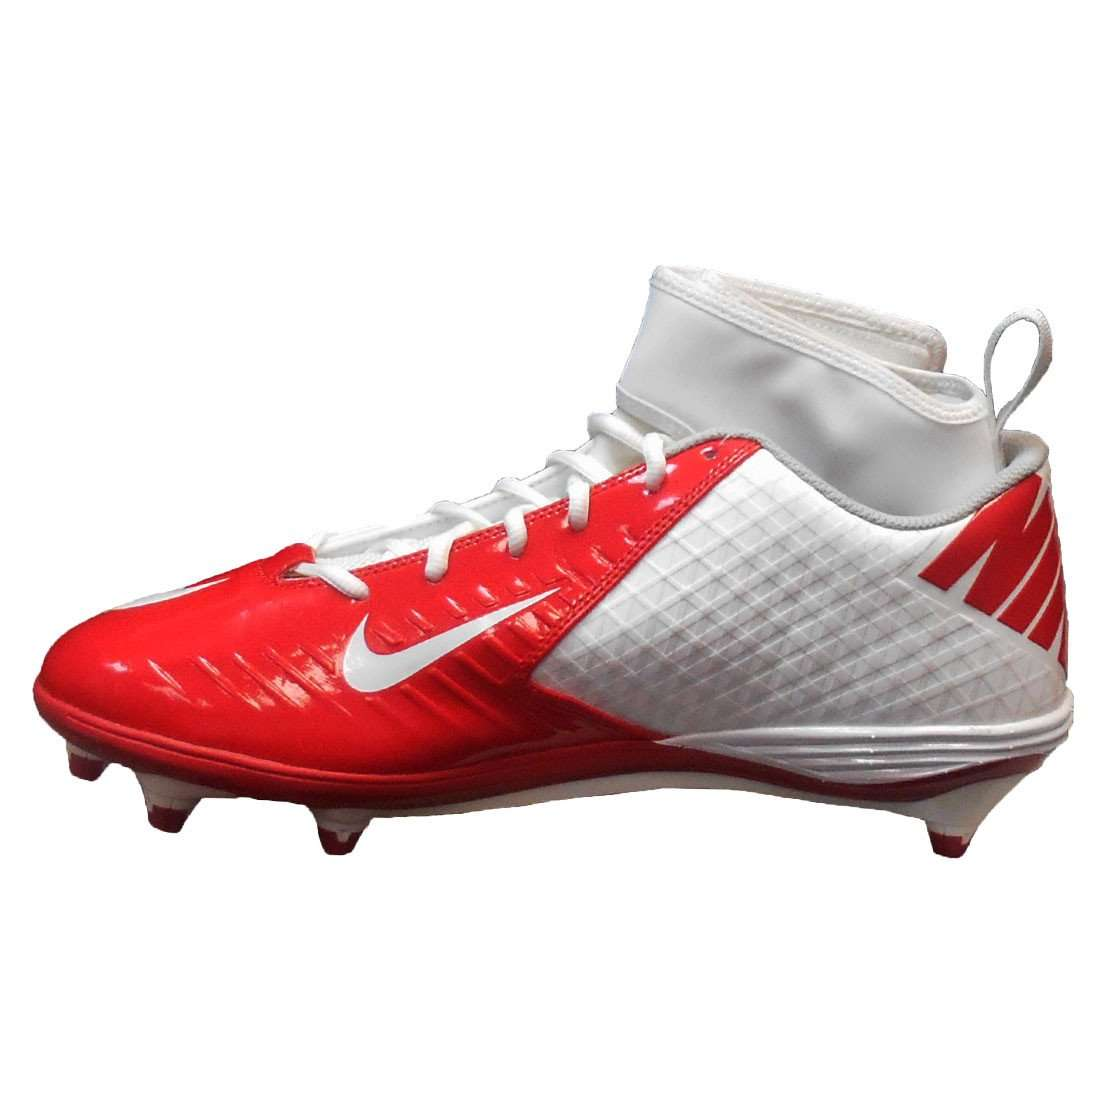 nike lunar super bad pro d football cleats league outfitters .